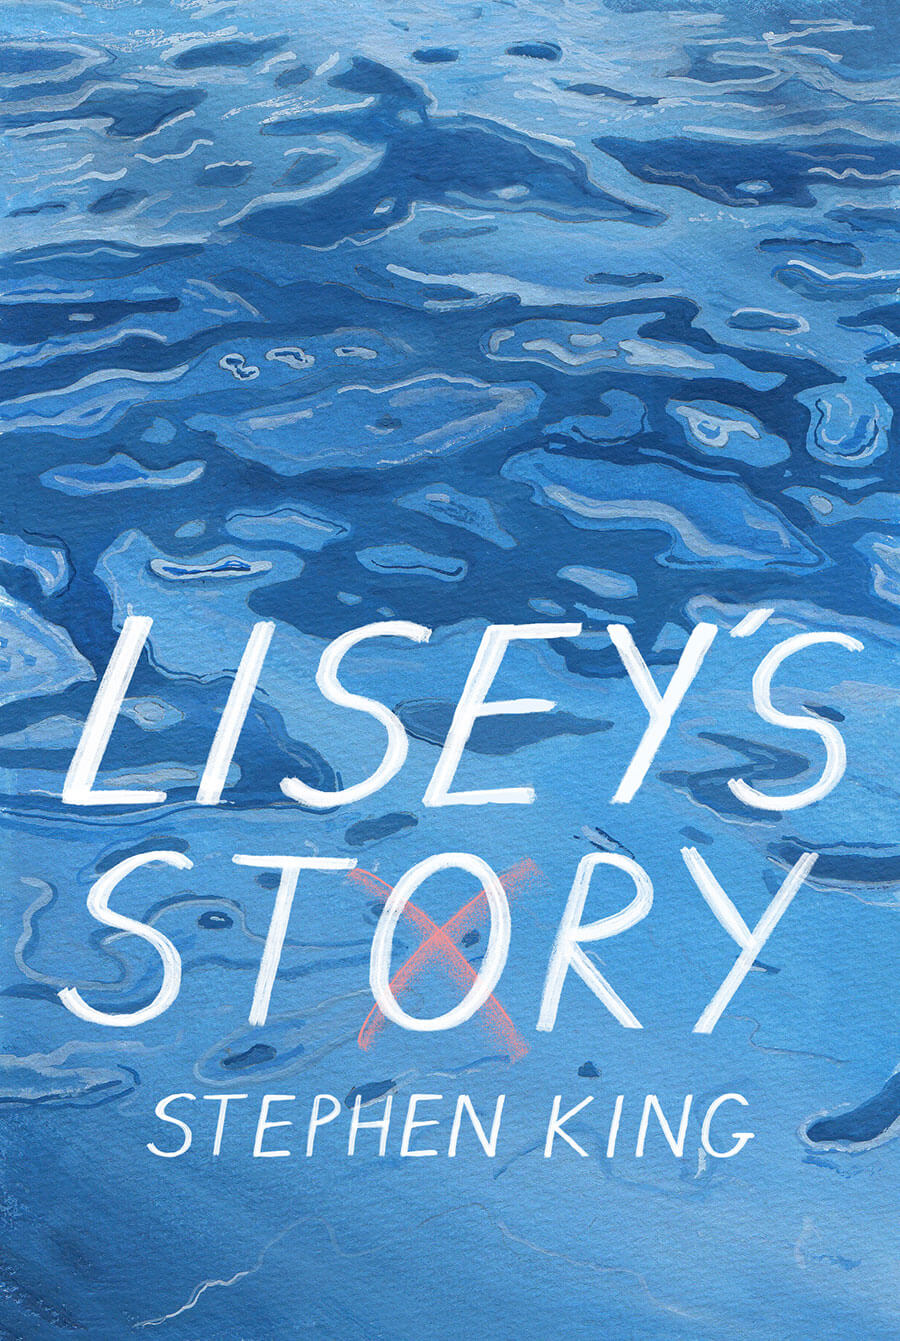 Liseys-story-book-cover